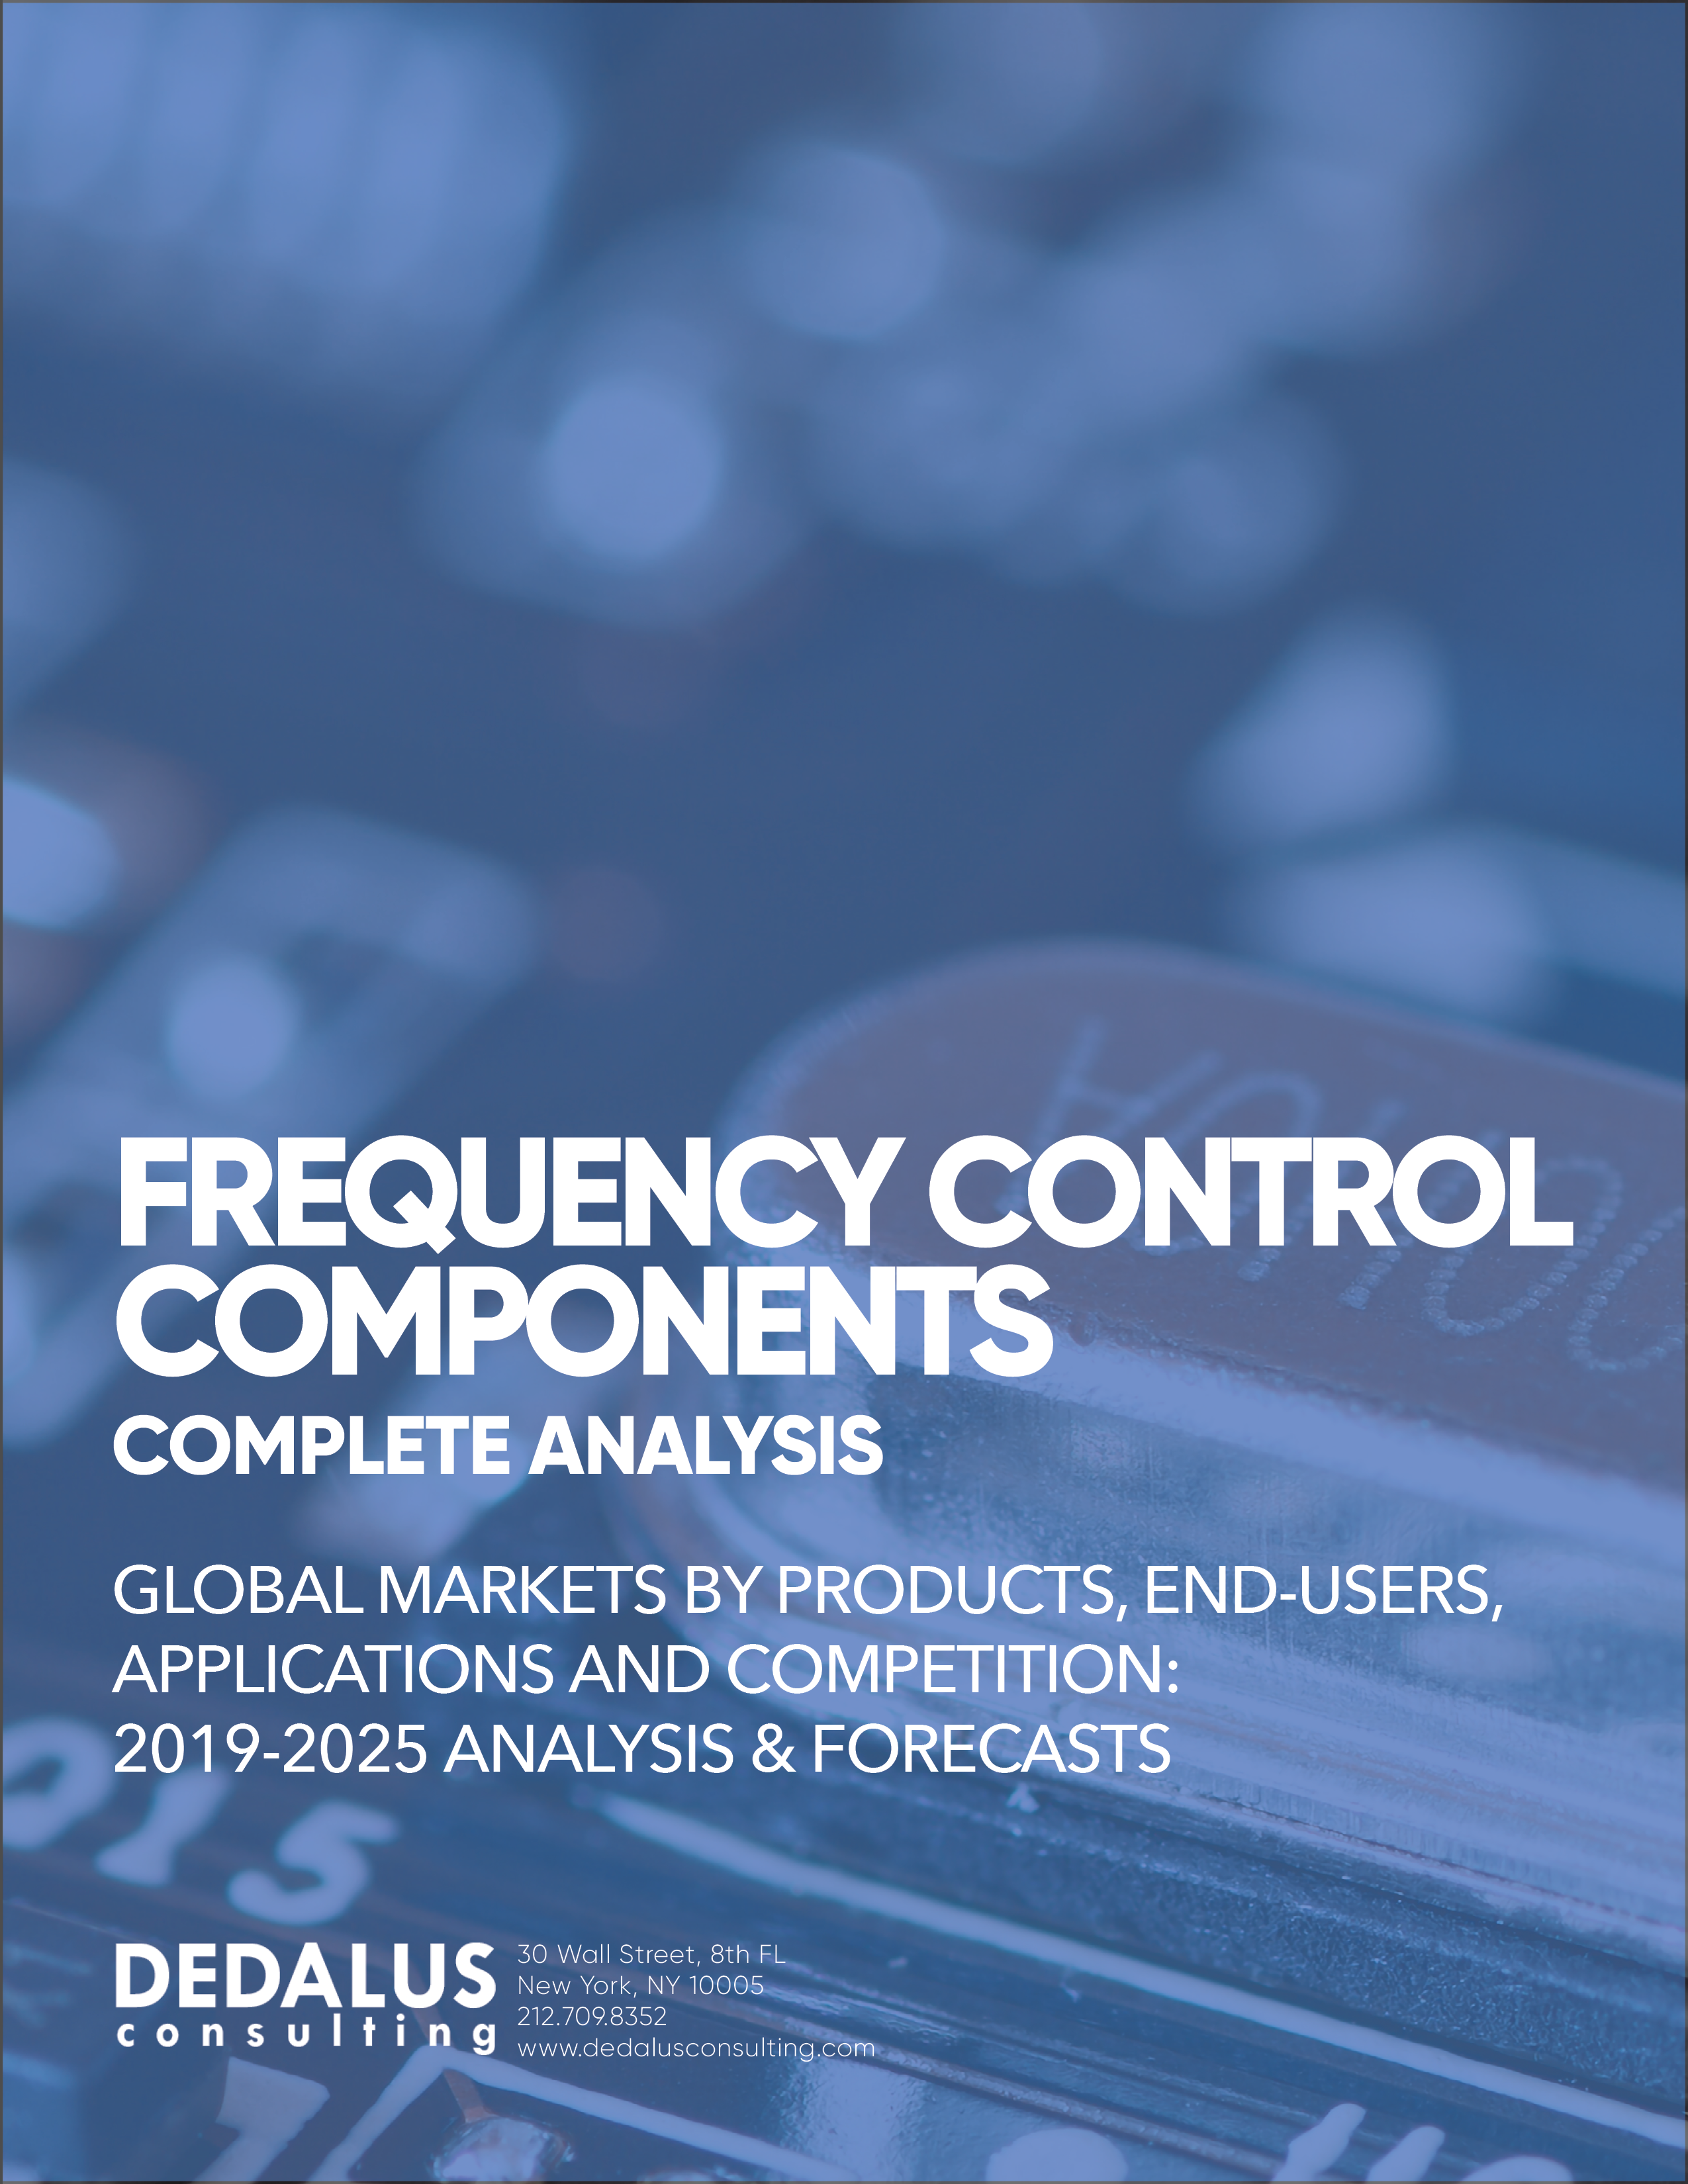 Frequency Control Components Report